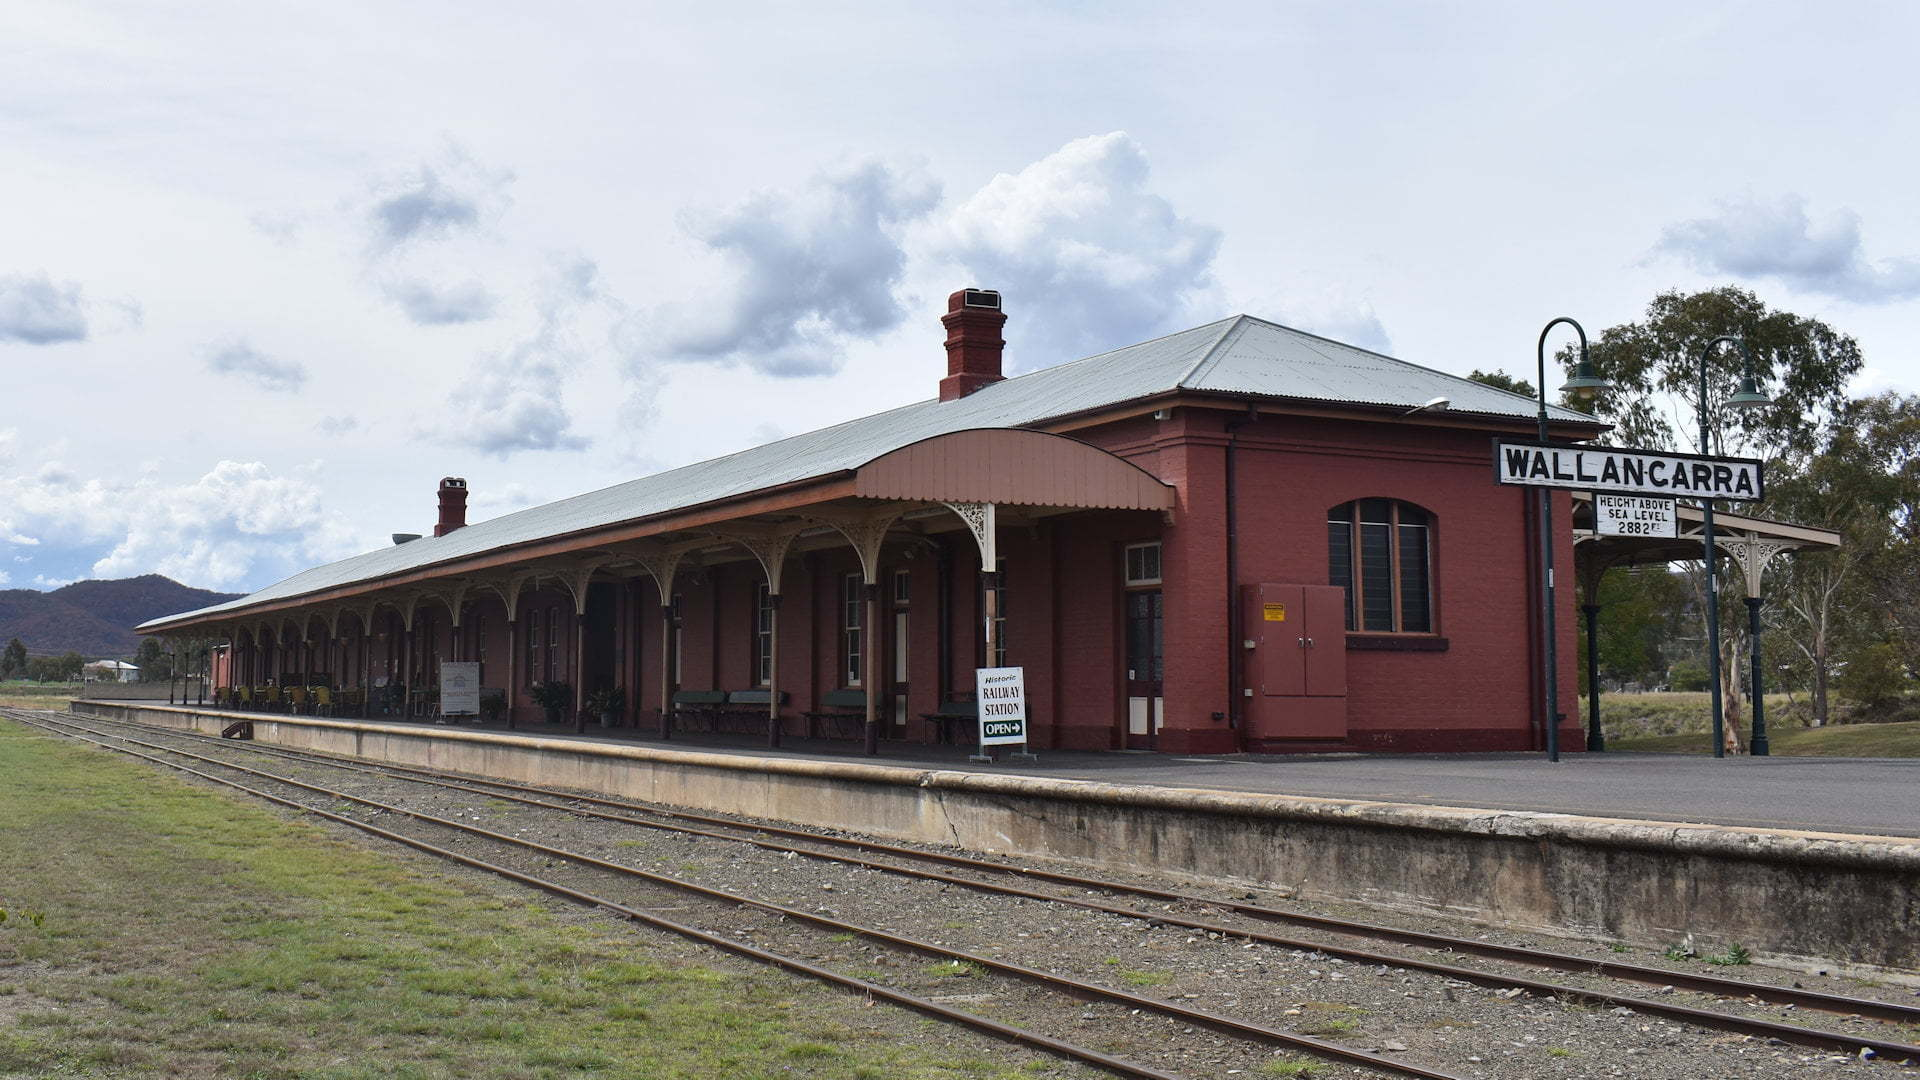 Historic railway station at Wallangarra on the Queensland and New South border